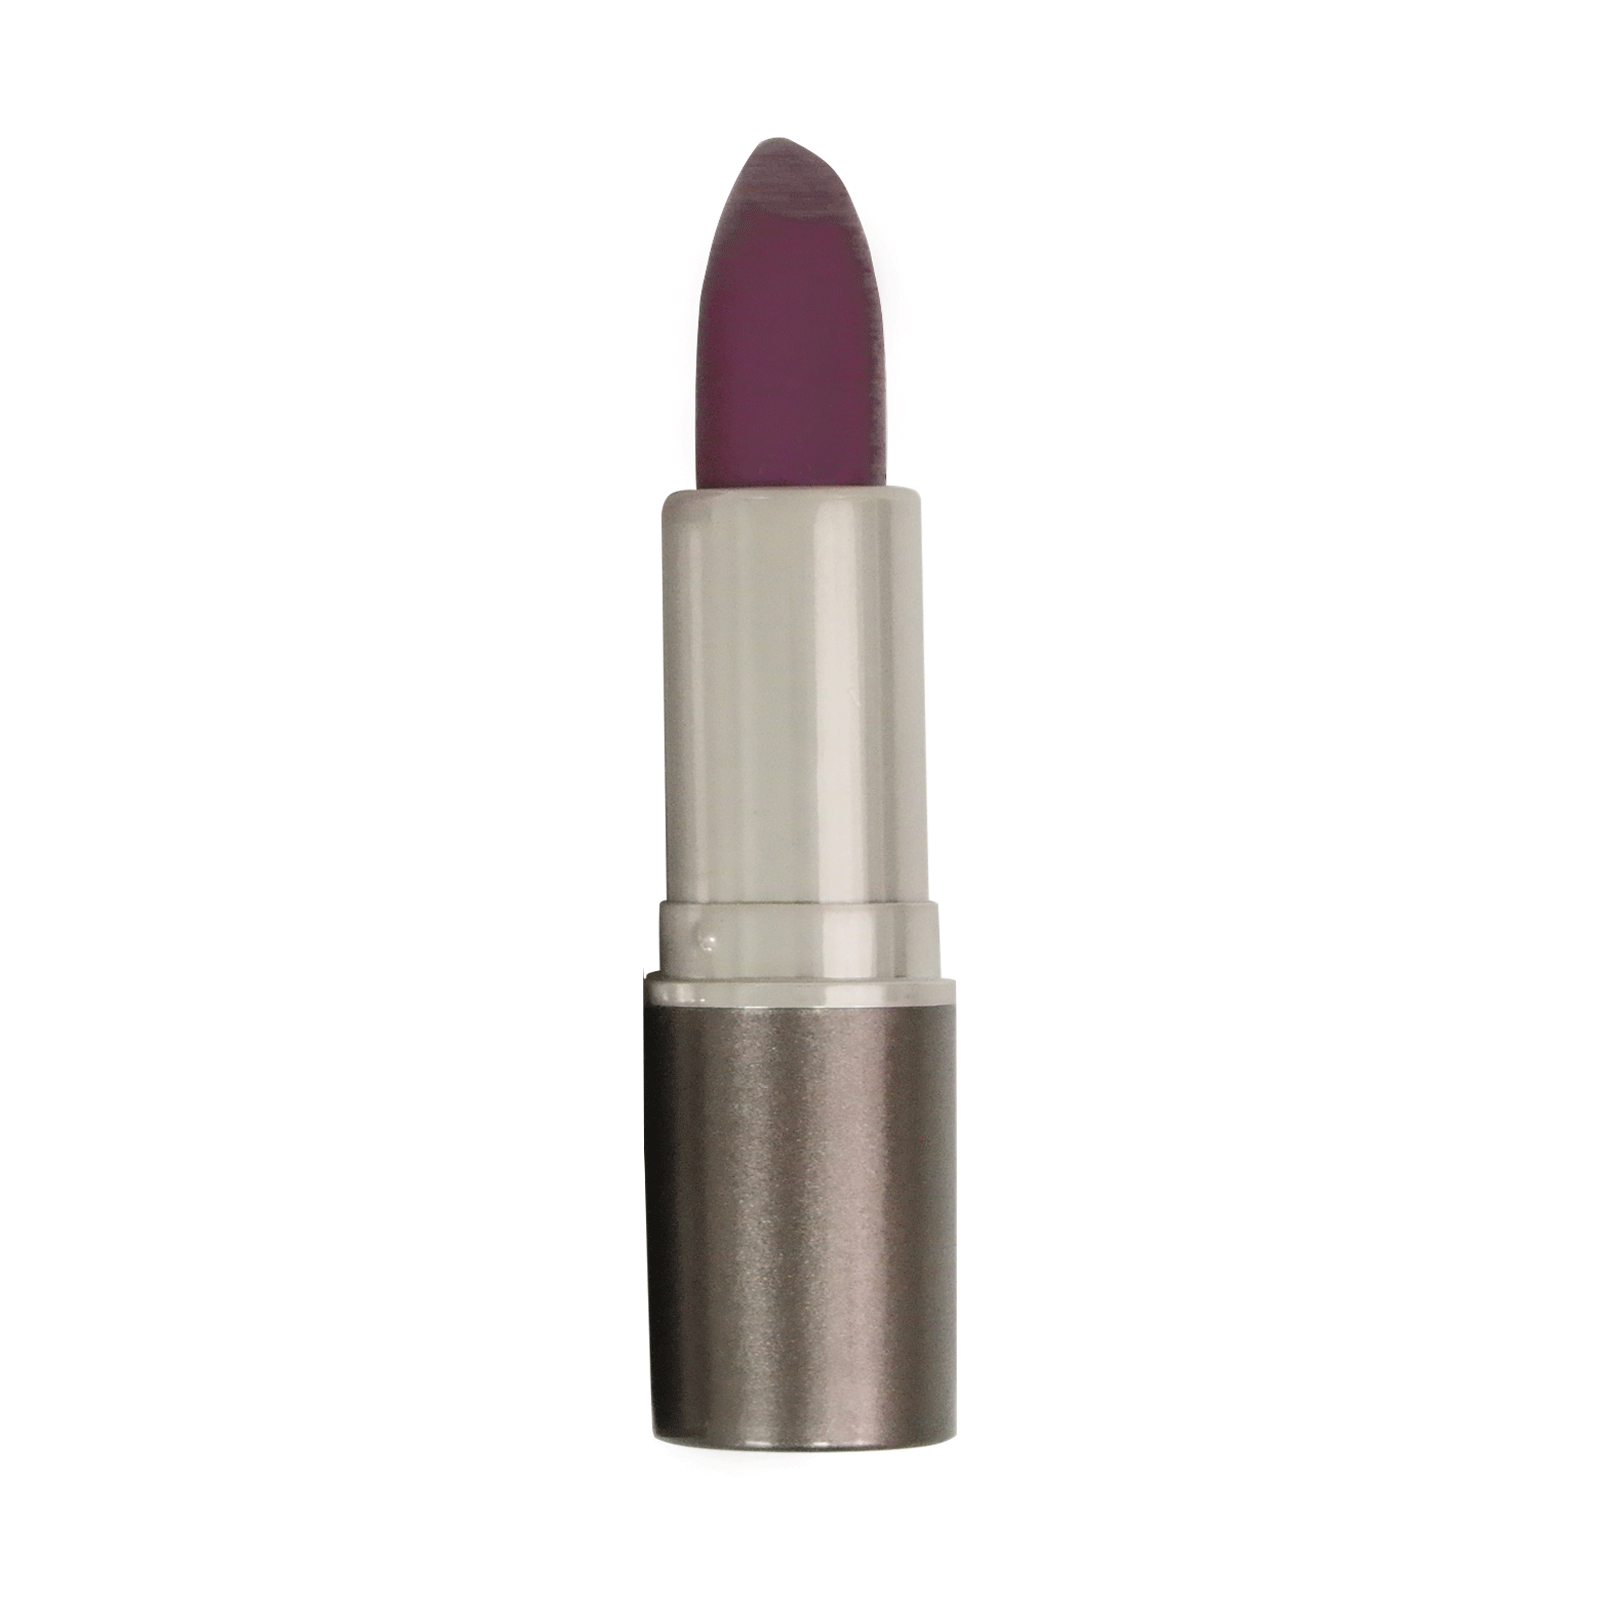 Hydra Moist Luxurious Lipstick - Private